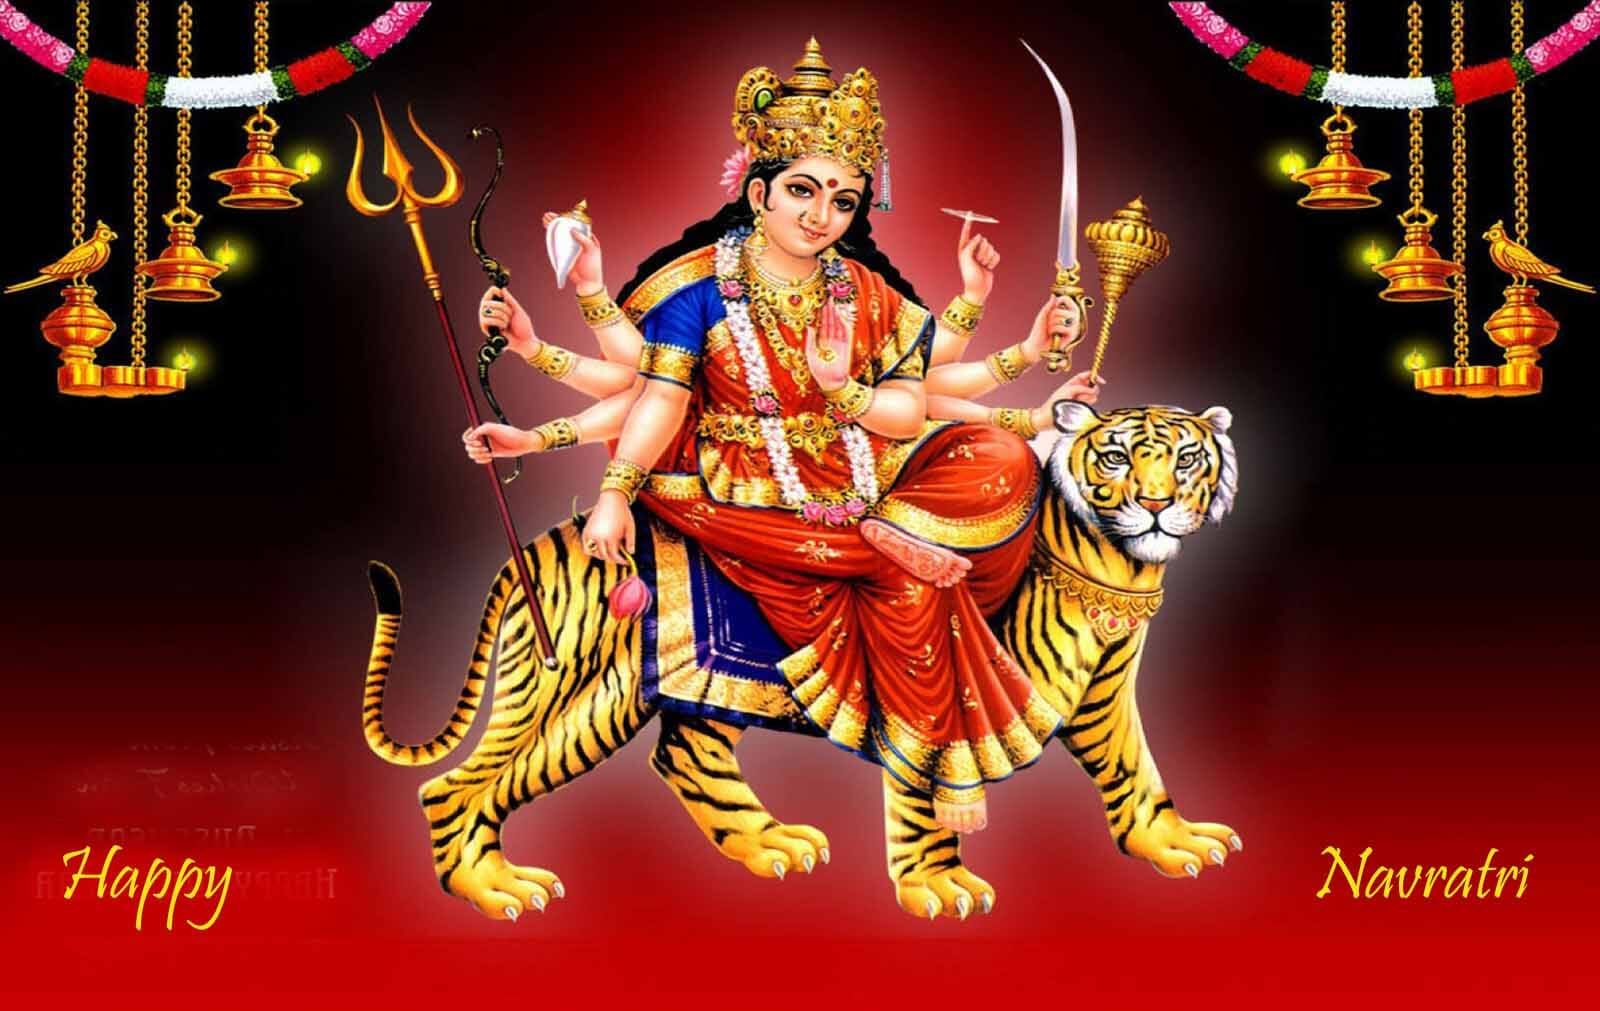 happy navratri images HD wallpapers download